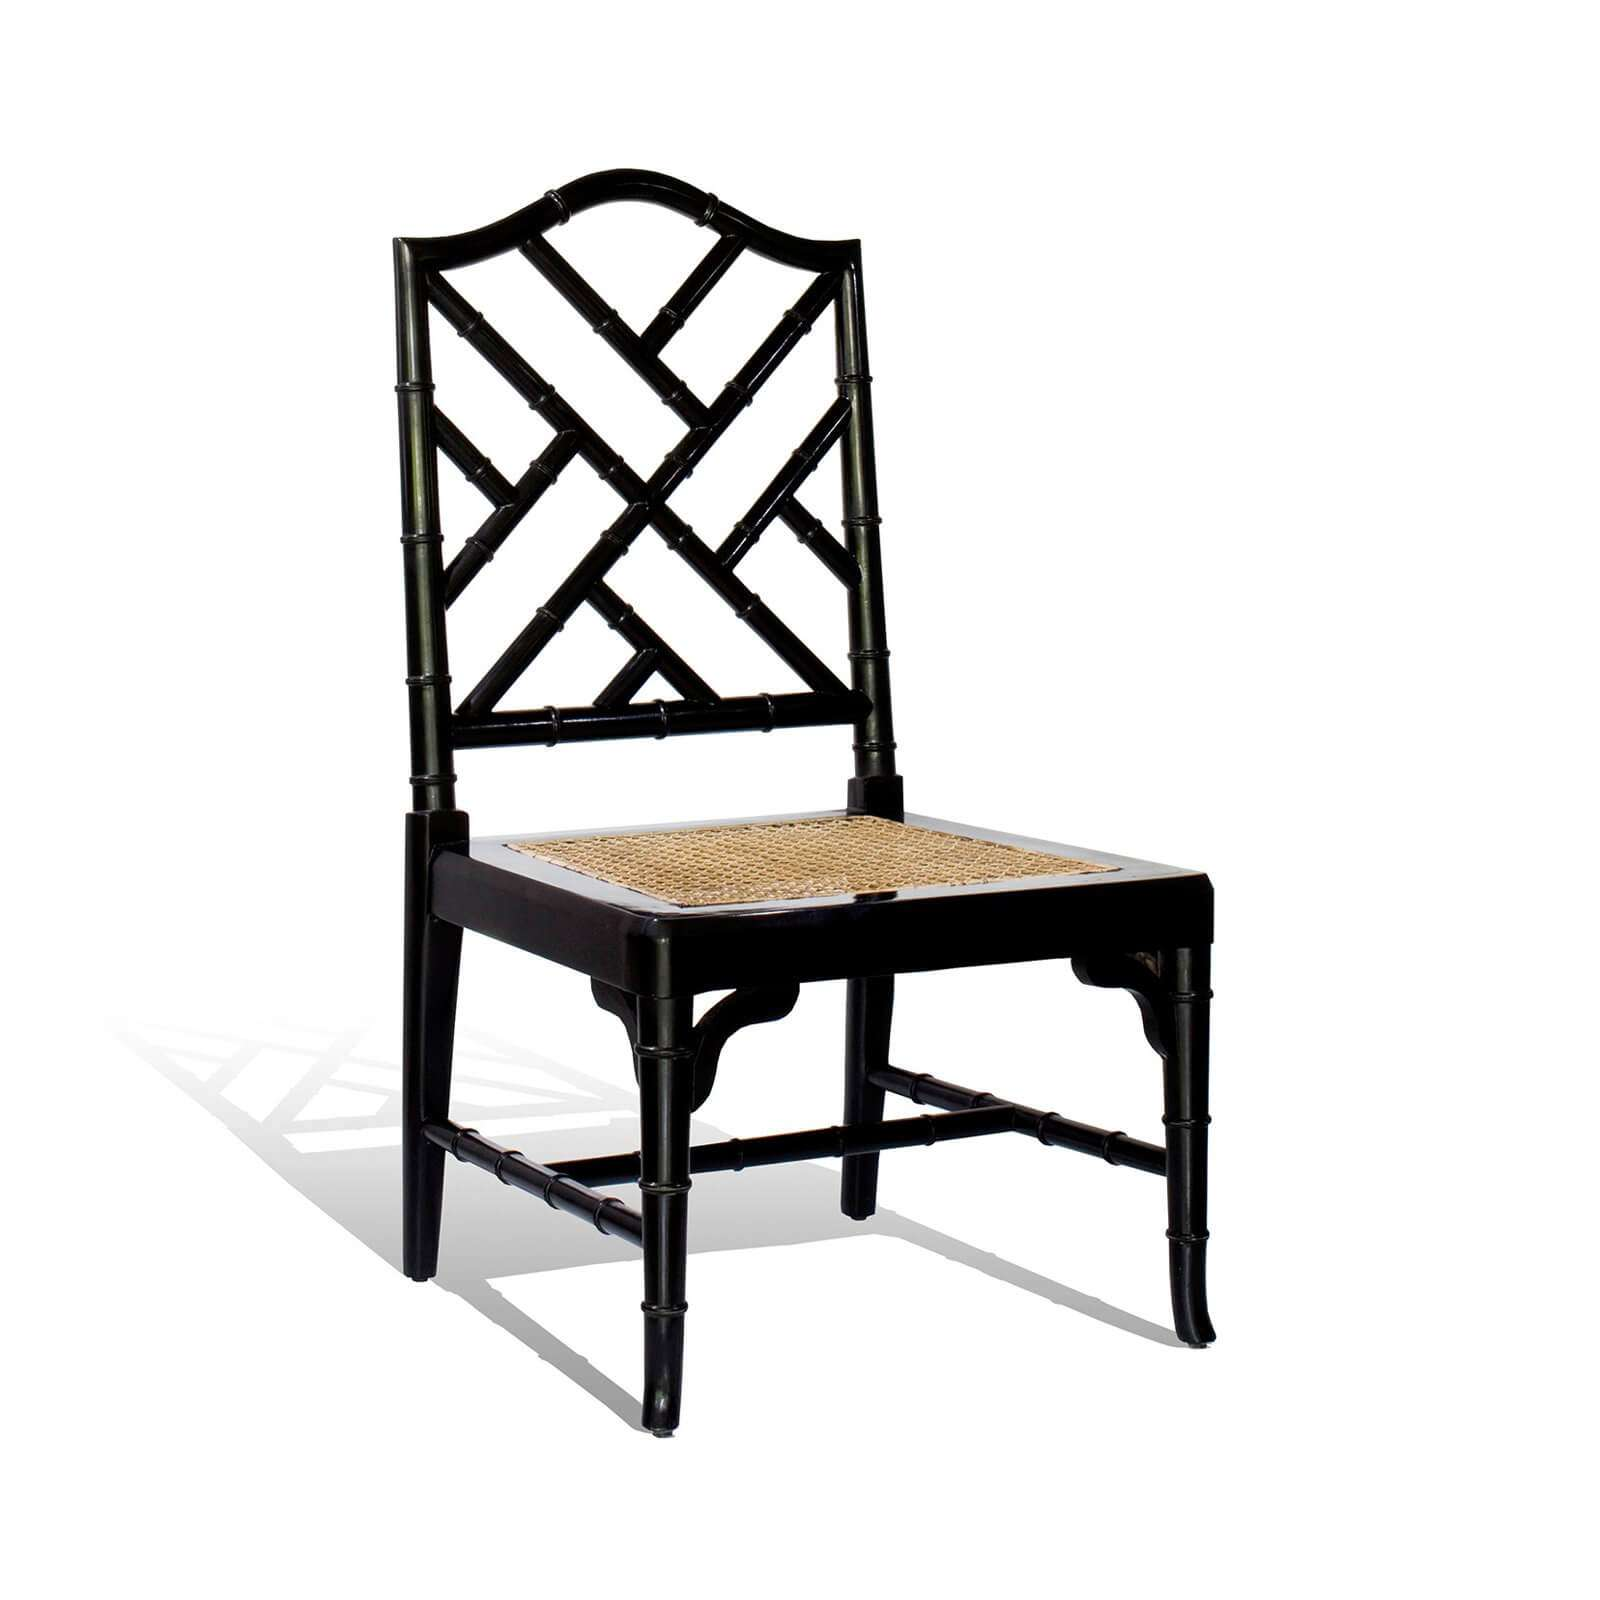 HOLLYWOOD FAUX BAMBOO SIDE CHAIR - STUART MEMBERY HOME COLLECTION